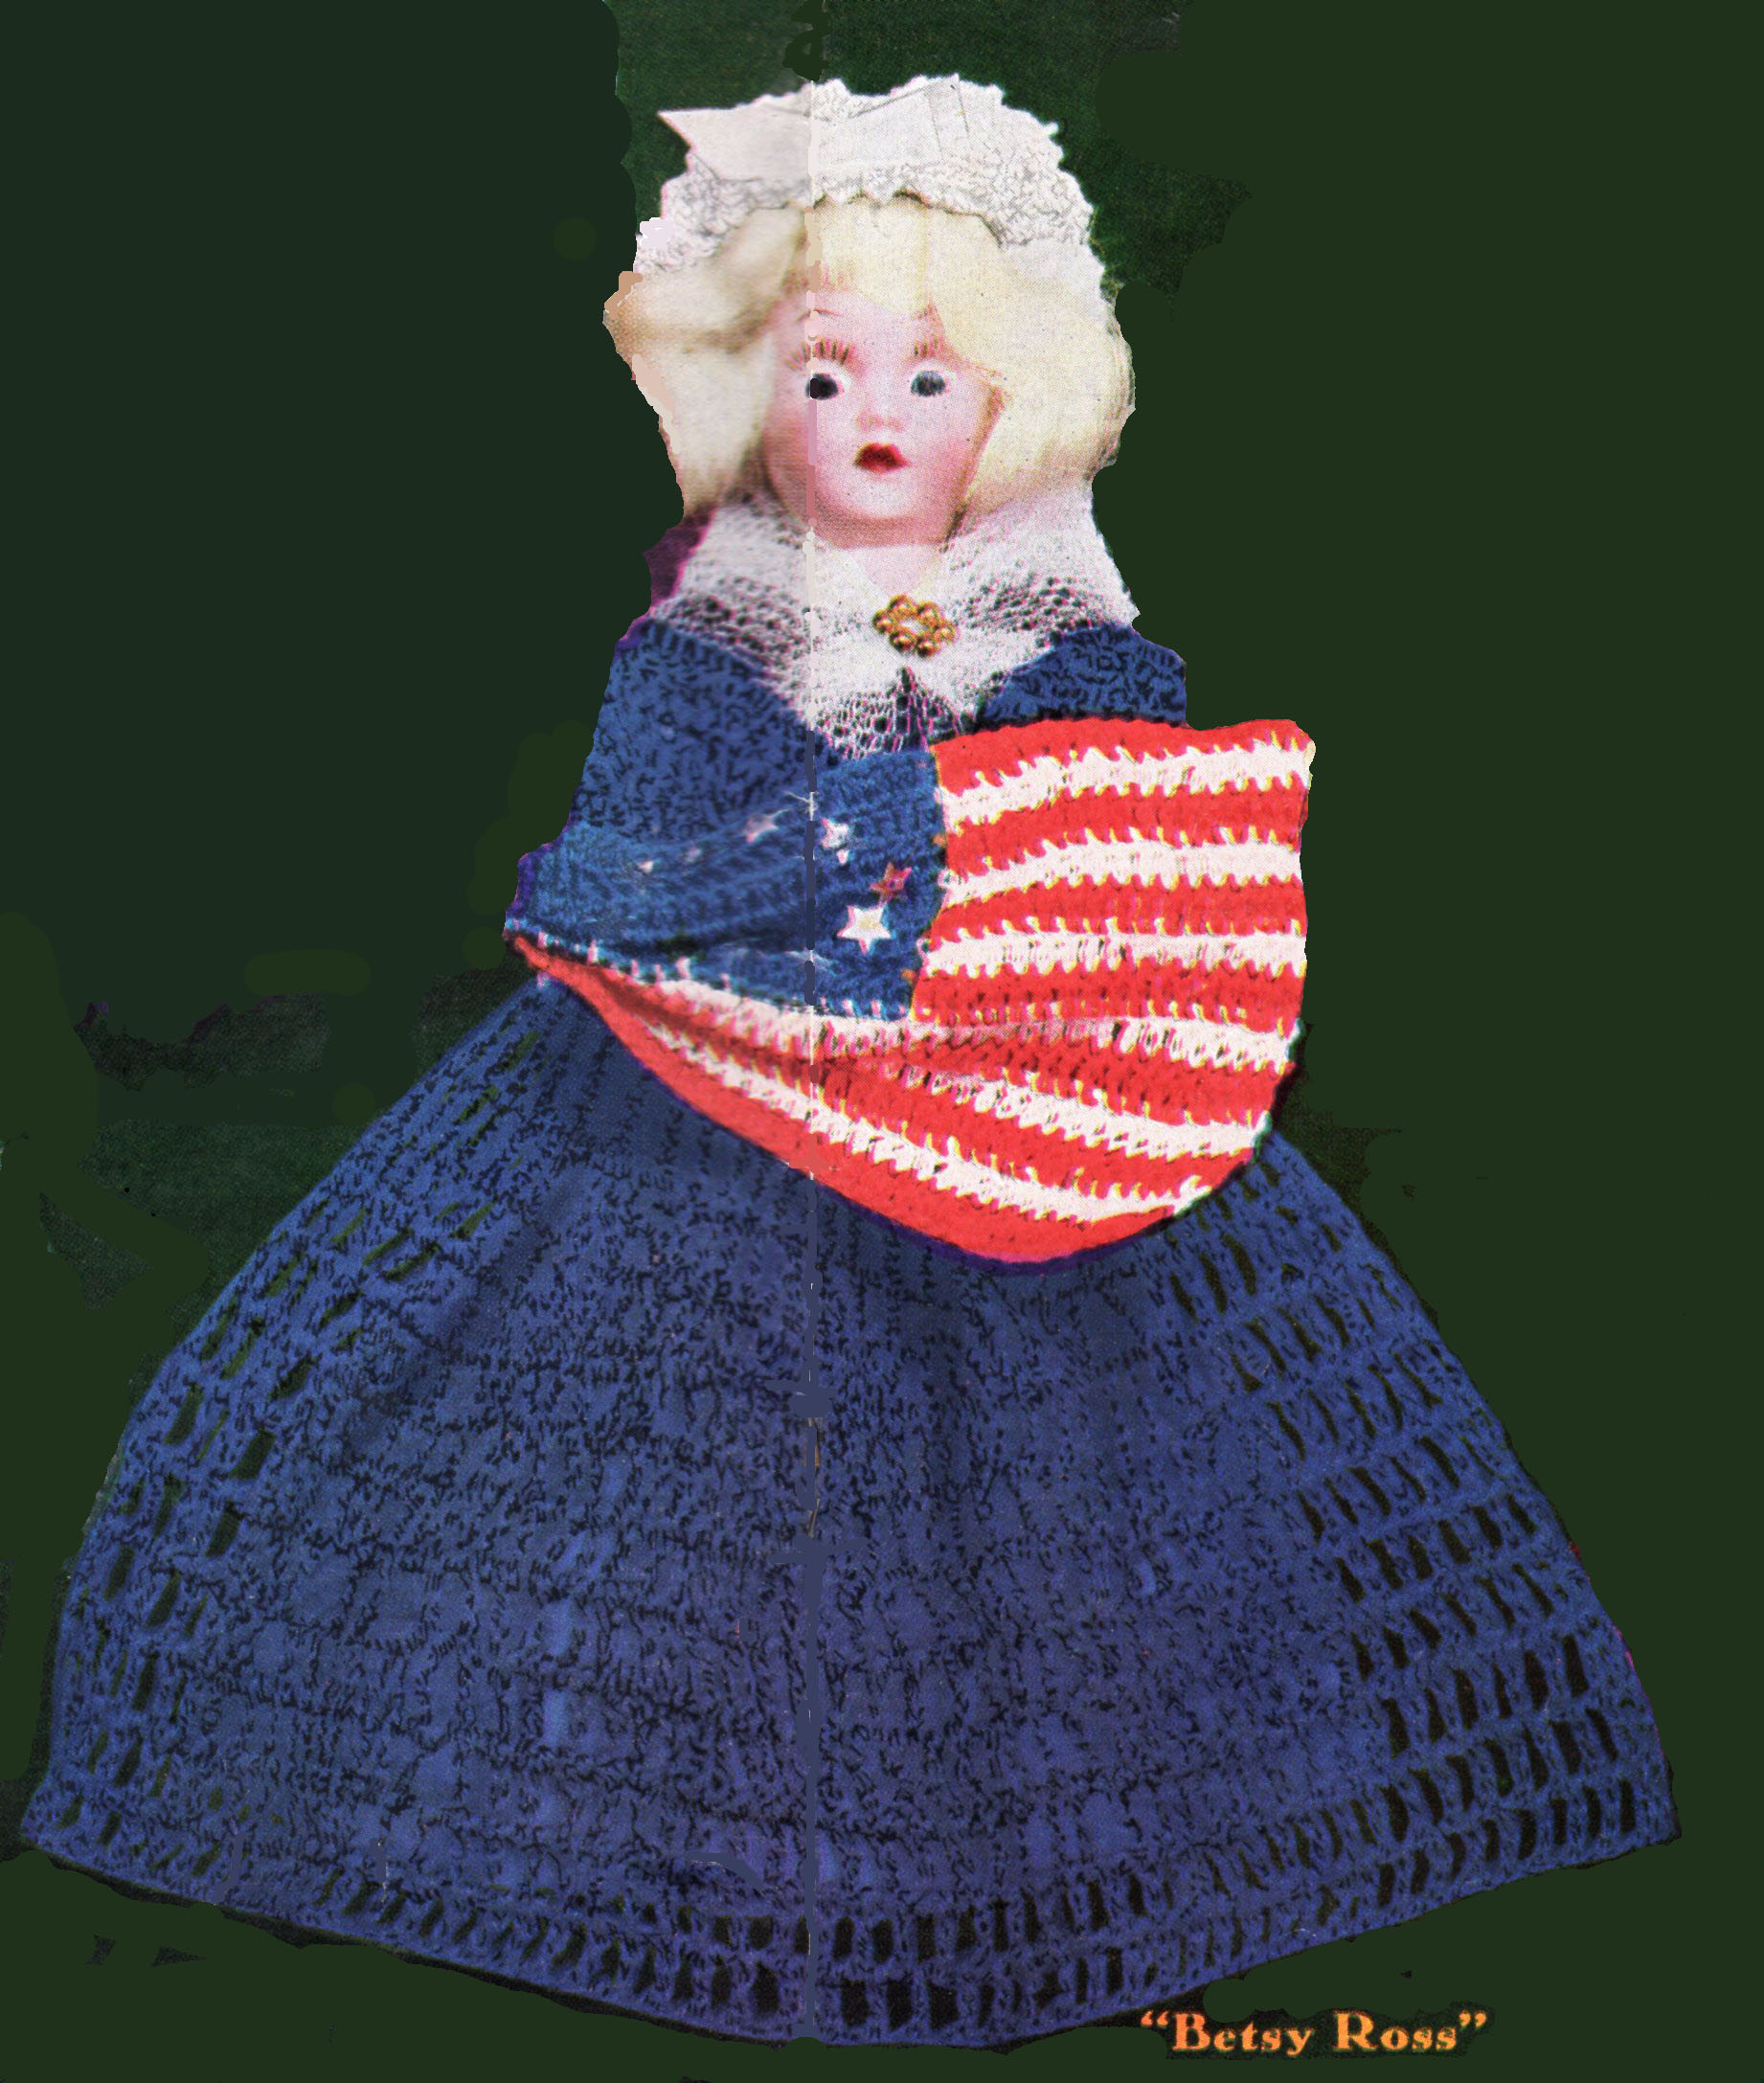 Dolls Of Famous Women In History Betsy Ross Doll Outfit And Flag